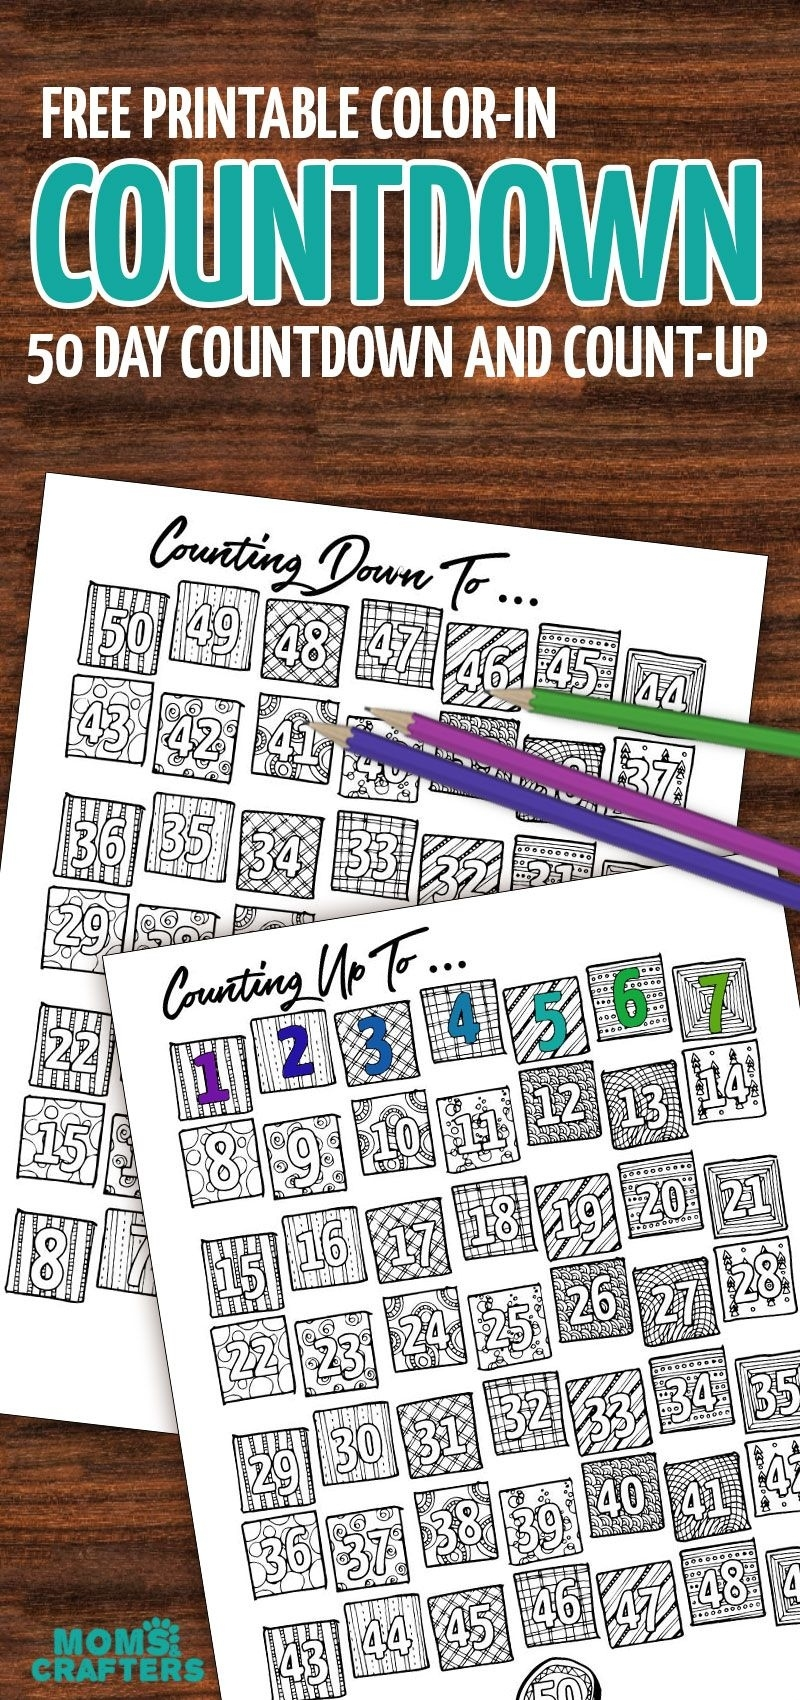 Grab This Fun Color-In Countdown And Progress Tracker | Moms And Calendar Countdown To Print